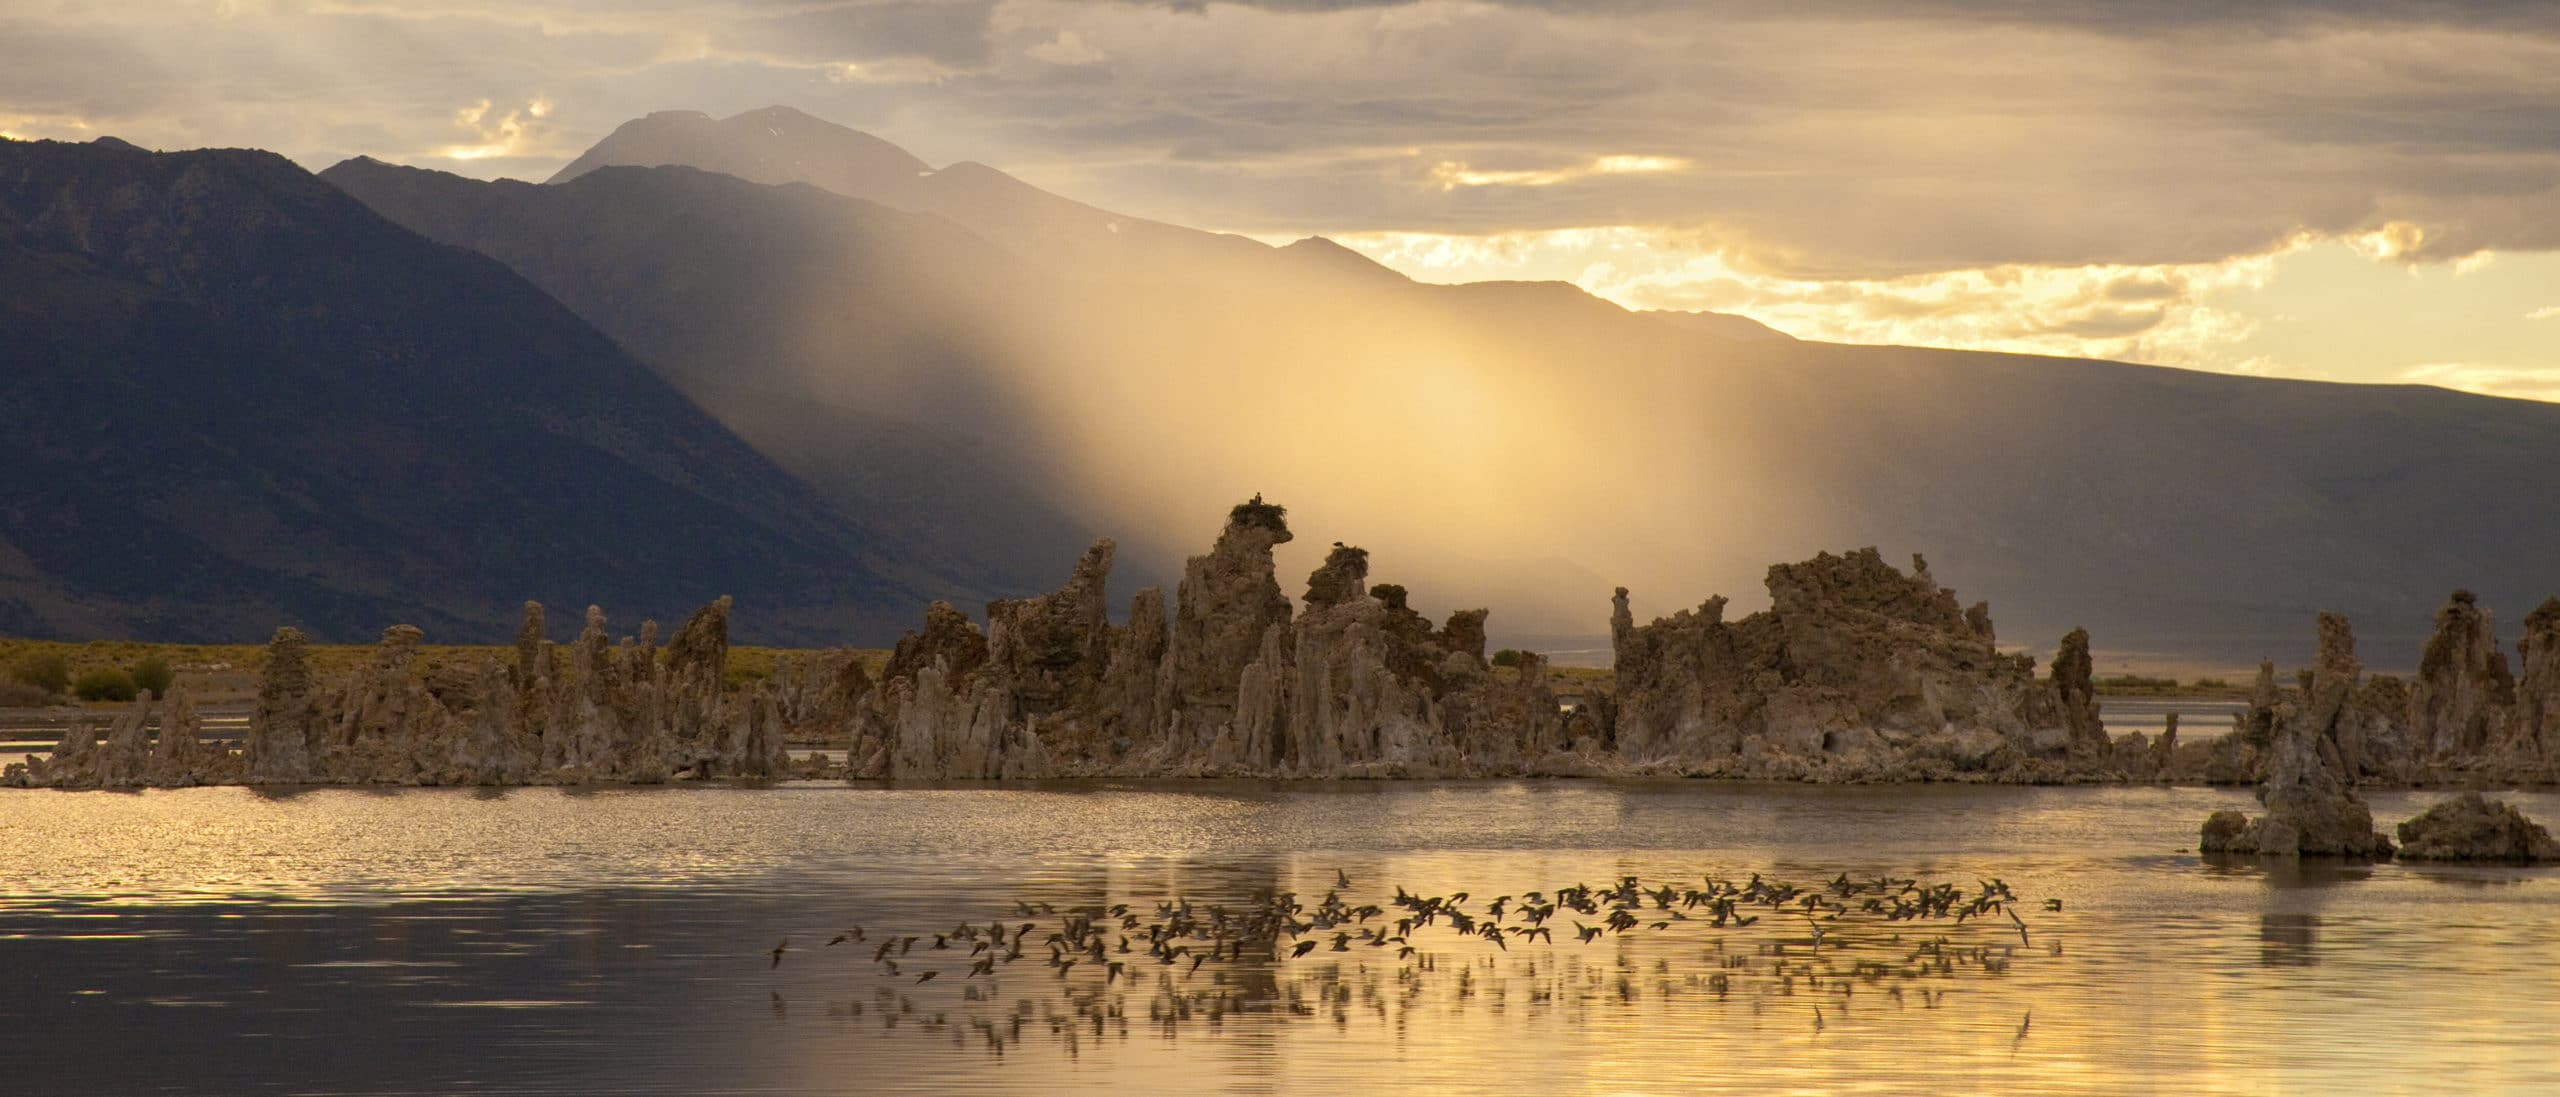 Dramatic sunset scene at Mono Lake with a flock of 100 or so shorebirds skimming above the lake surfact, tufa towers emerging from the water and standing above, with a golden beam of light between the tufa towers and the tall mountain peaks in the distance, with everything drenched in warm golden hues.